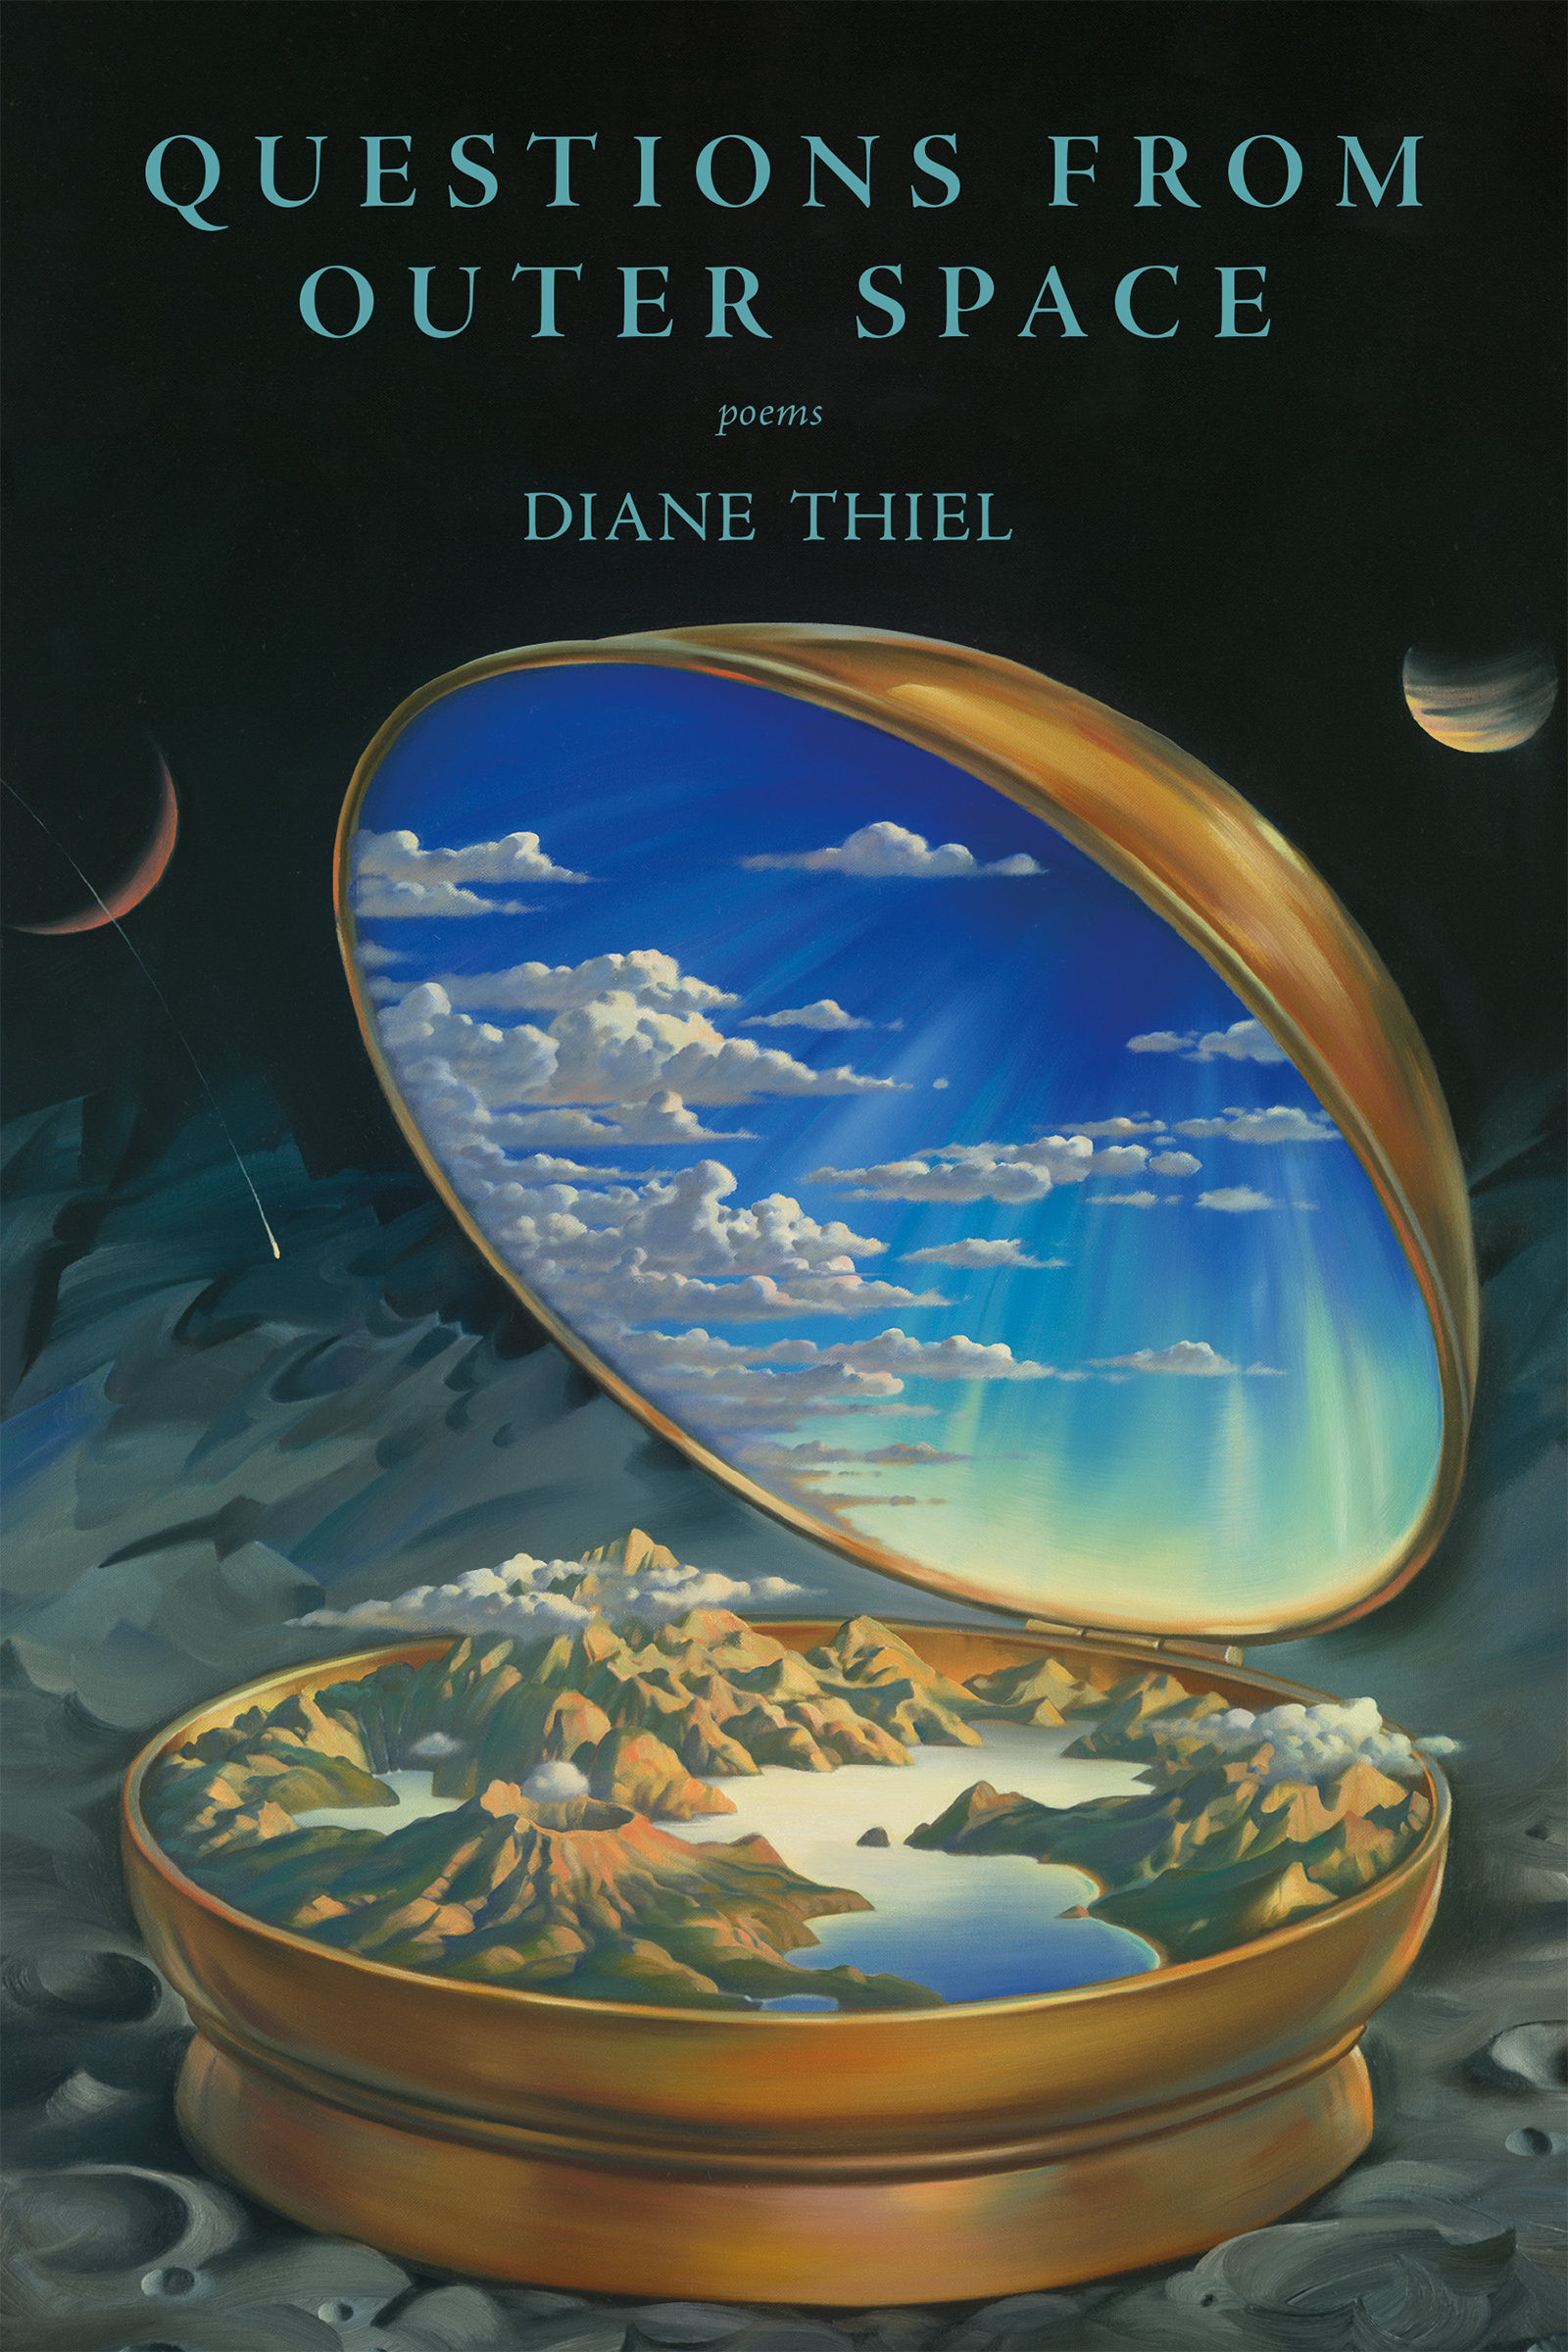 Blue text that reads Questions From Outer Space poems by Diane Thiel over a painted in drawing of a round golden container that is opened half way showing a mountainous terrain with water in the bottom half and the sky on the top half, that is rested on the surface of a grey planet with two planets orbiting nearby.